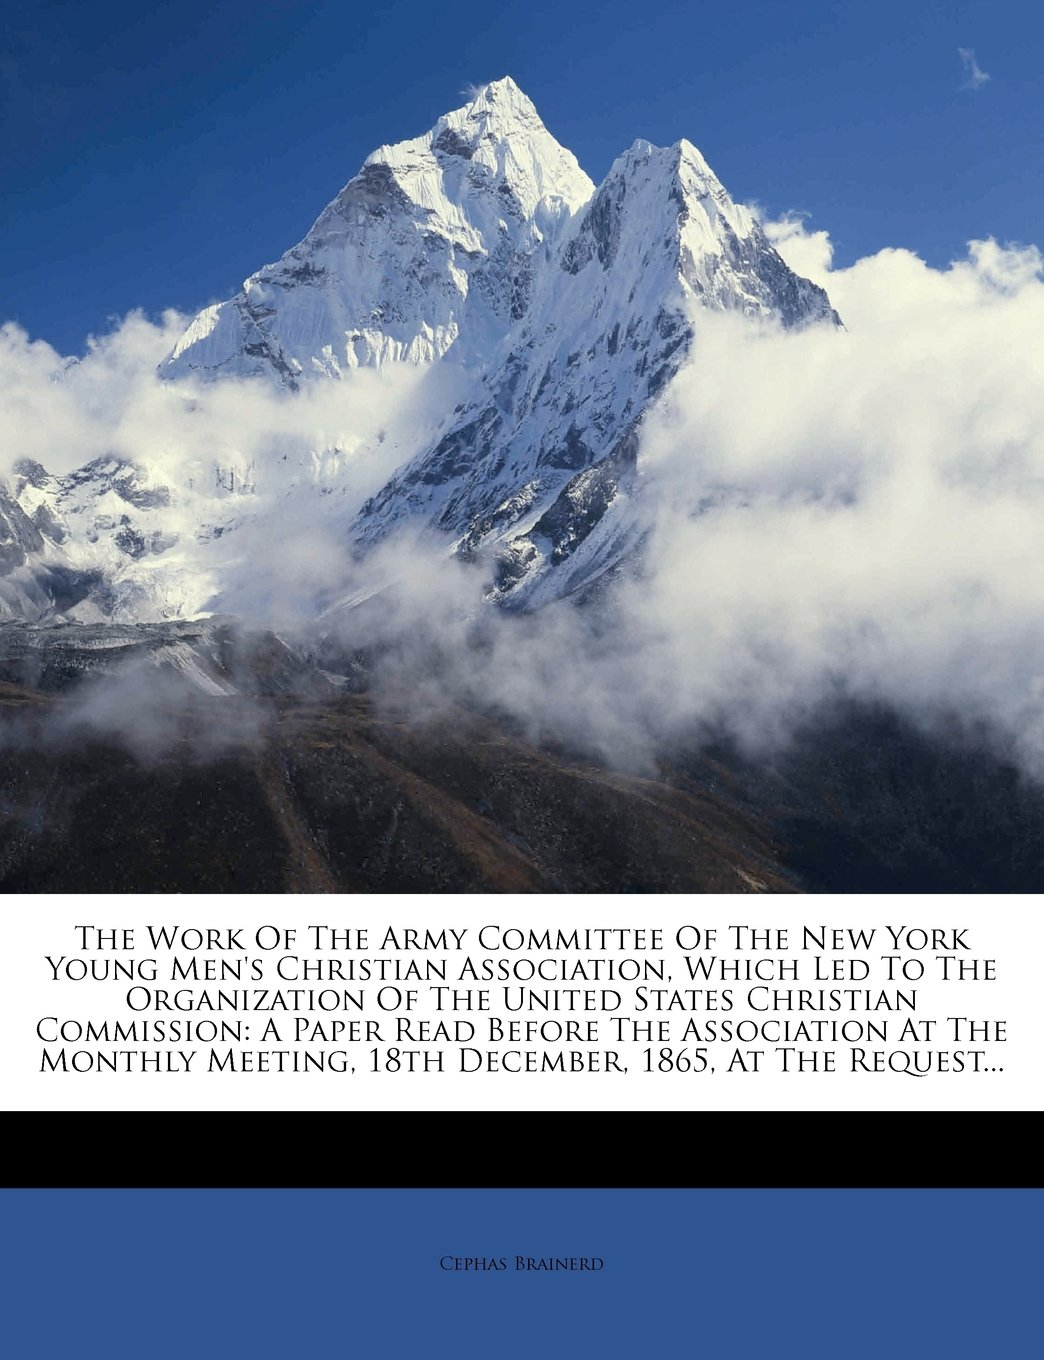 Download The Work Of The Army Committee Of The New York Young Men's Christian Association, Which Led To The Organization Of The United States Christian ... 18th December, 1865, At The Request... PDF